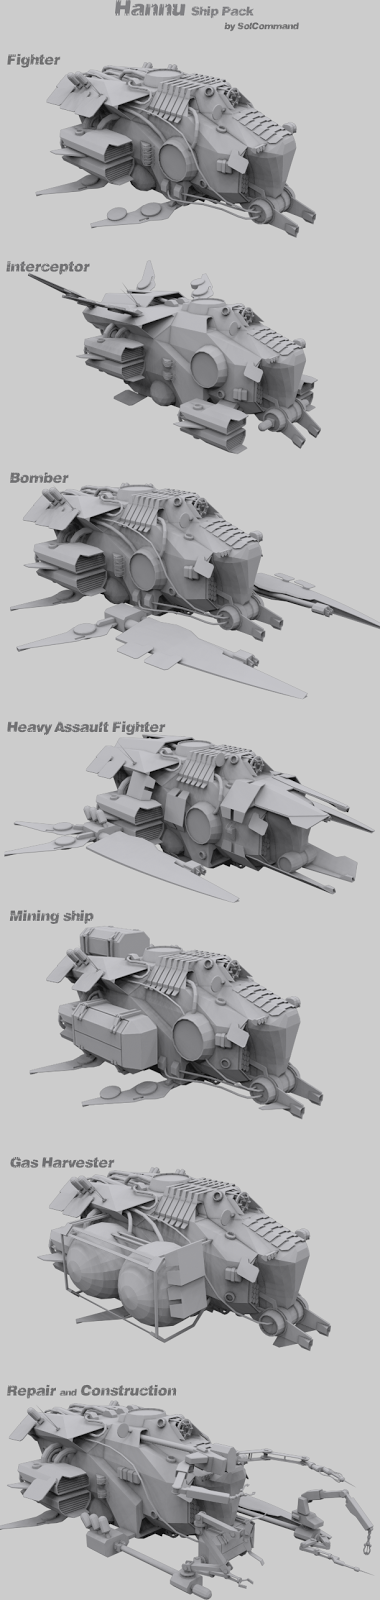 wip, ship, pack, collection, work in progress, solcommand, fighter, bomber, interceptor, heavy, assault, ship, space, spaceship,   scifi, custom, original, download, free, 3d model, mesh, texture, transport, cargo, troop, mining, miner, gas, harvester, harvest,   asteroid, gas cloud, repair, scuttle, salvage, crew, small, low poly, game ready, indie, game dev, set, construction, stealth,   awacs, fleet, command, field, scout, tactical, rts, tbs